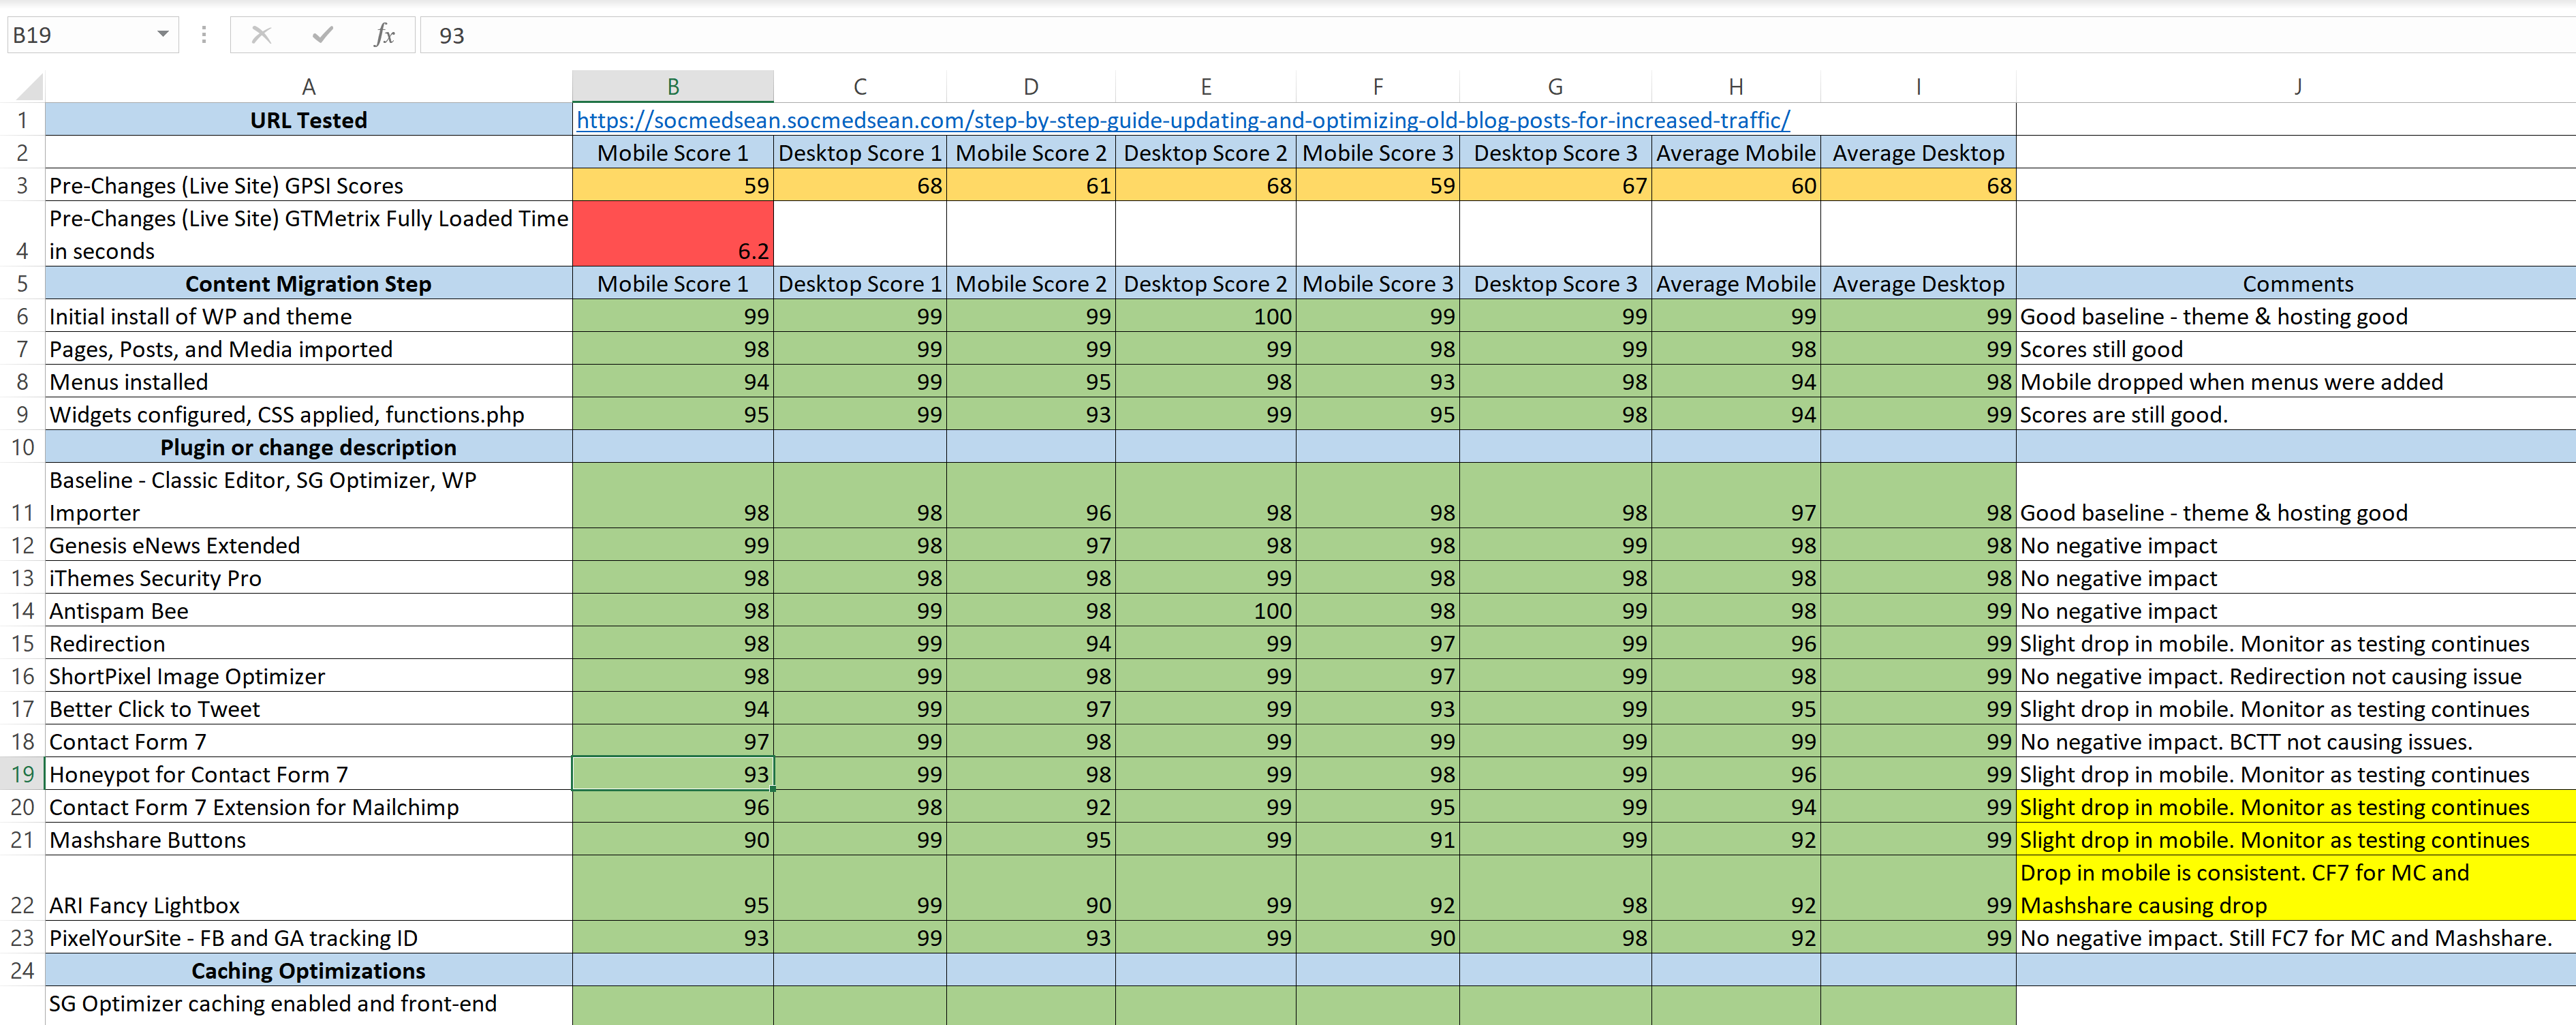 The Excel tracking spreadhsheet will help you track your testing progress and identify issues.